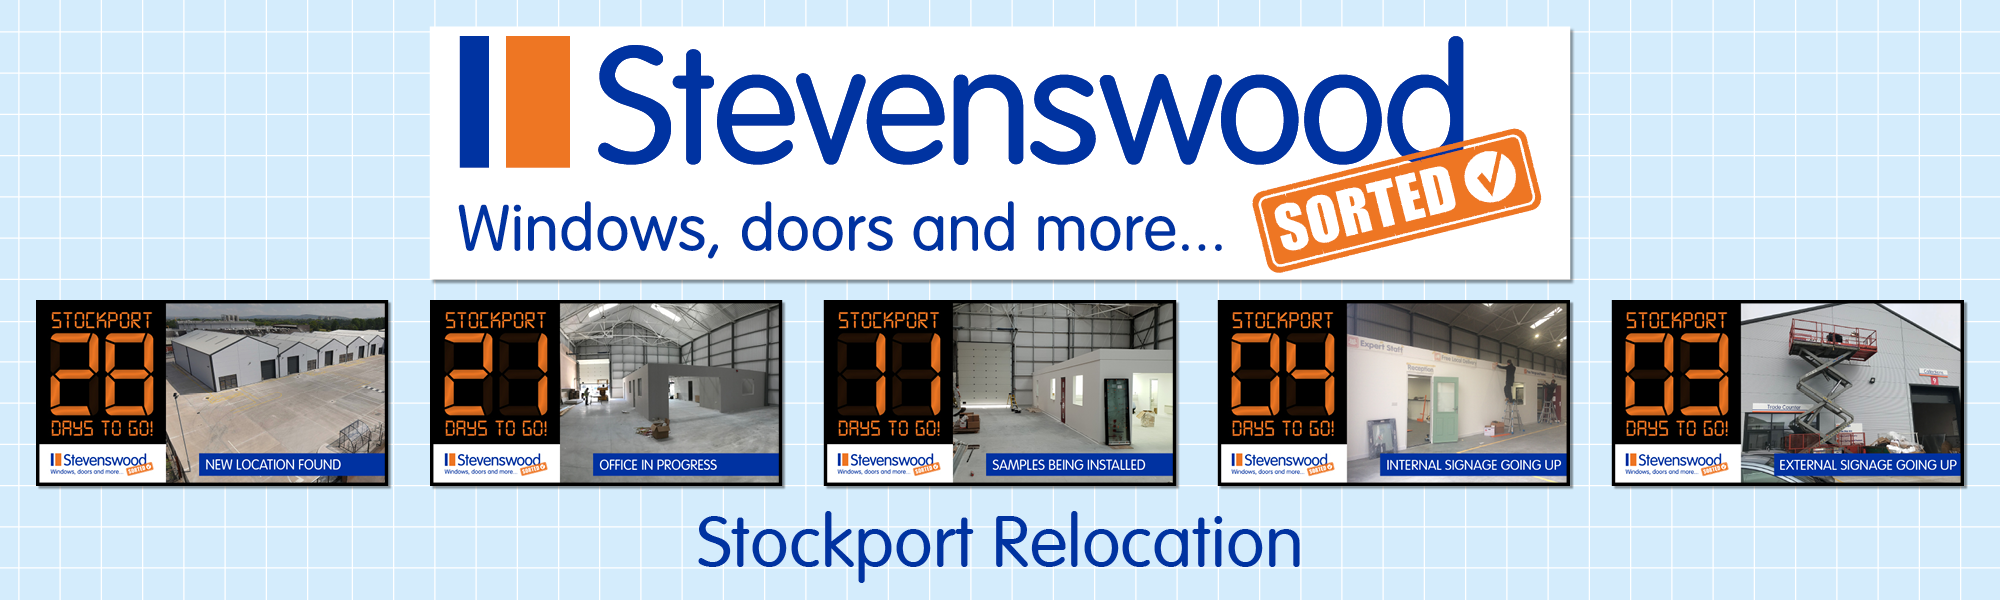 NEWS HEADER - Stockport Relocation.png